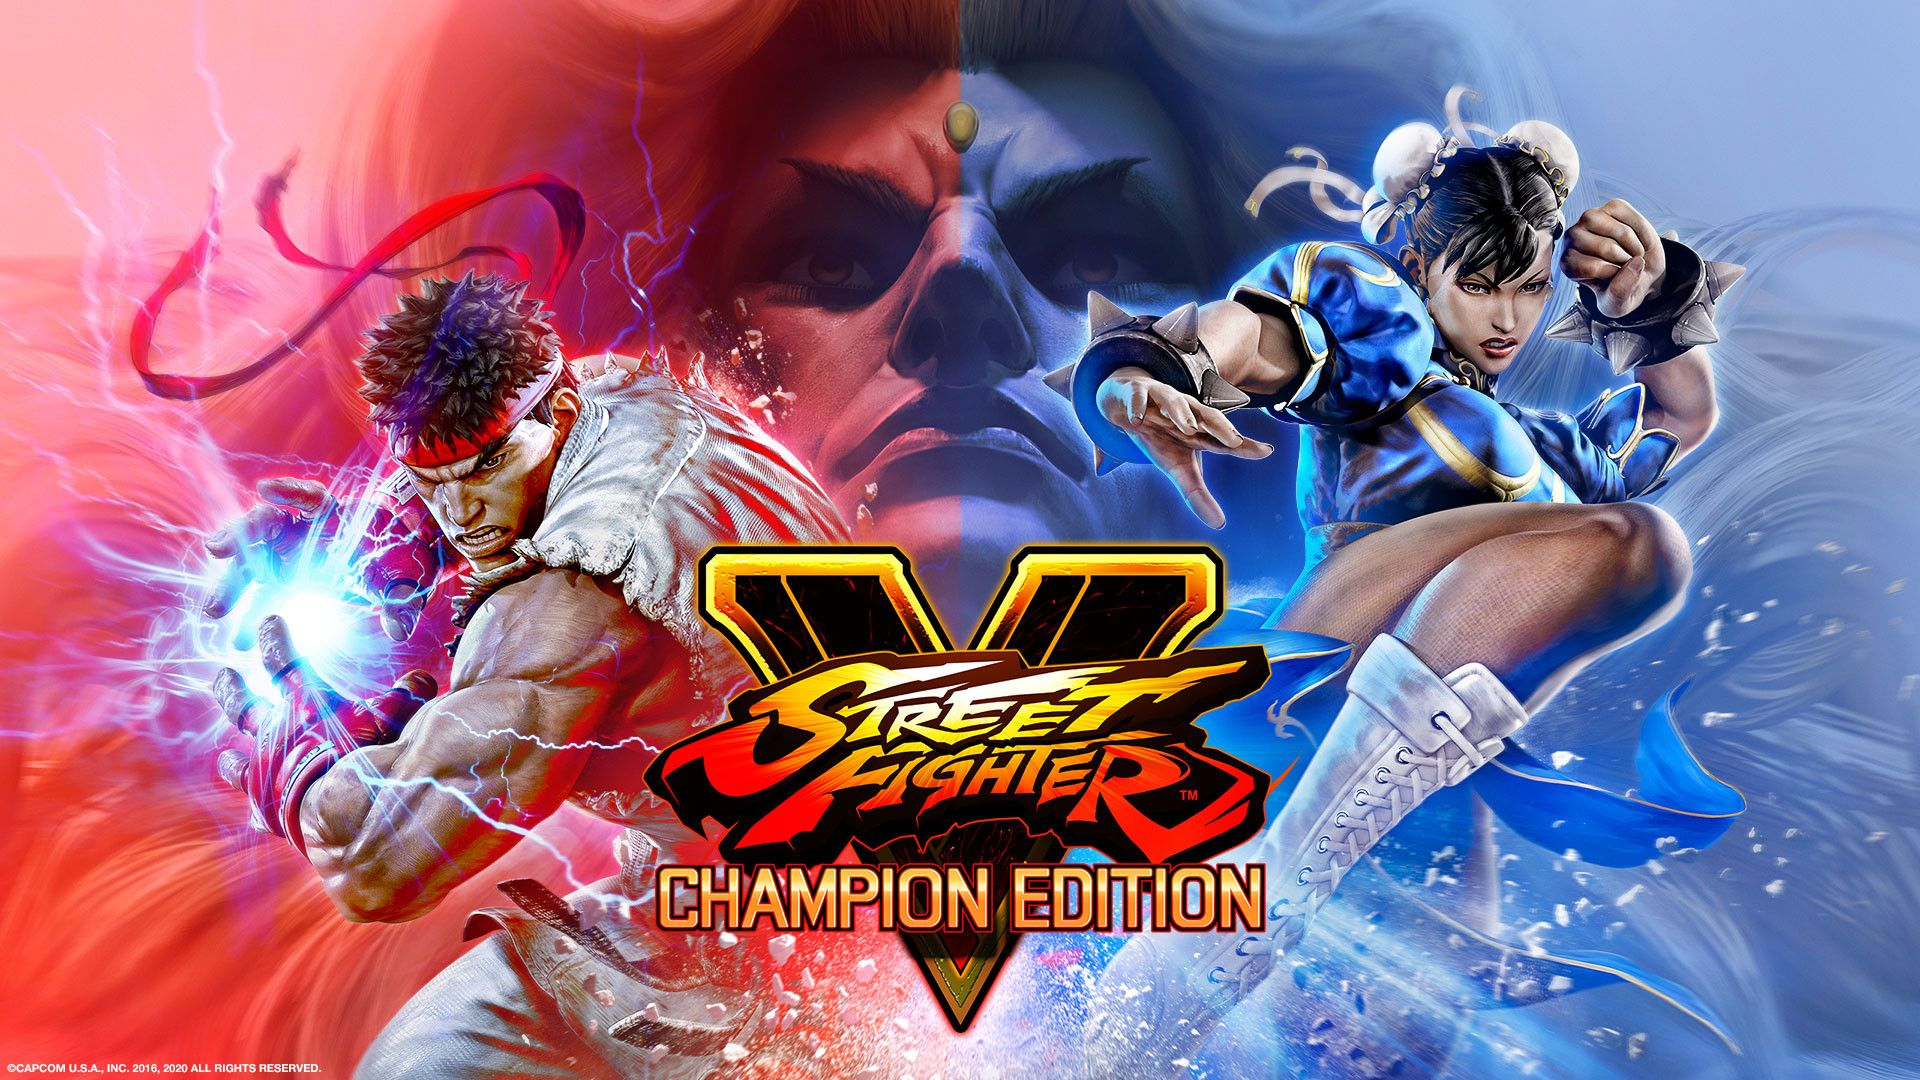 /3-new-street-fighter-5-characters-coming-soon-wt1033b3 feature image